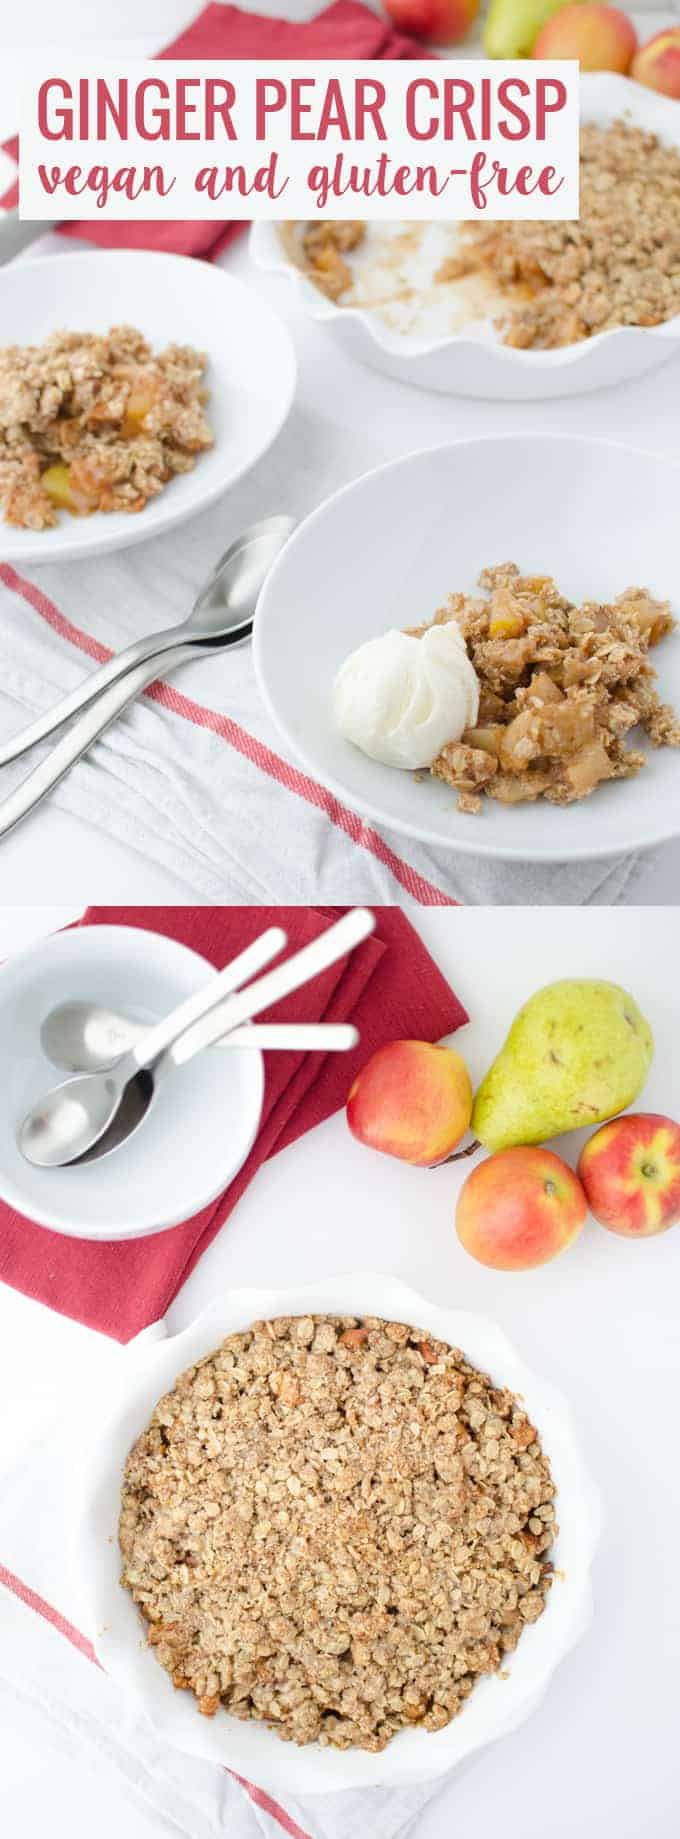 Ginger Apple Pear Crisp! You've gotta try this vegan and gluten-free dessert, perfect for Fall. | www.delishknowledge.com